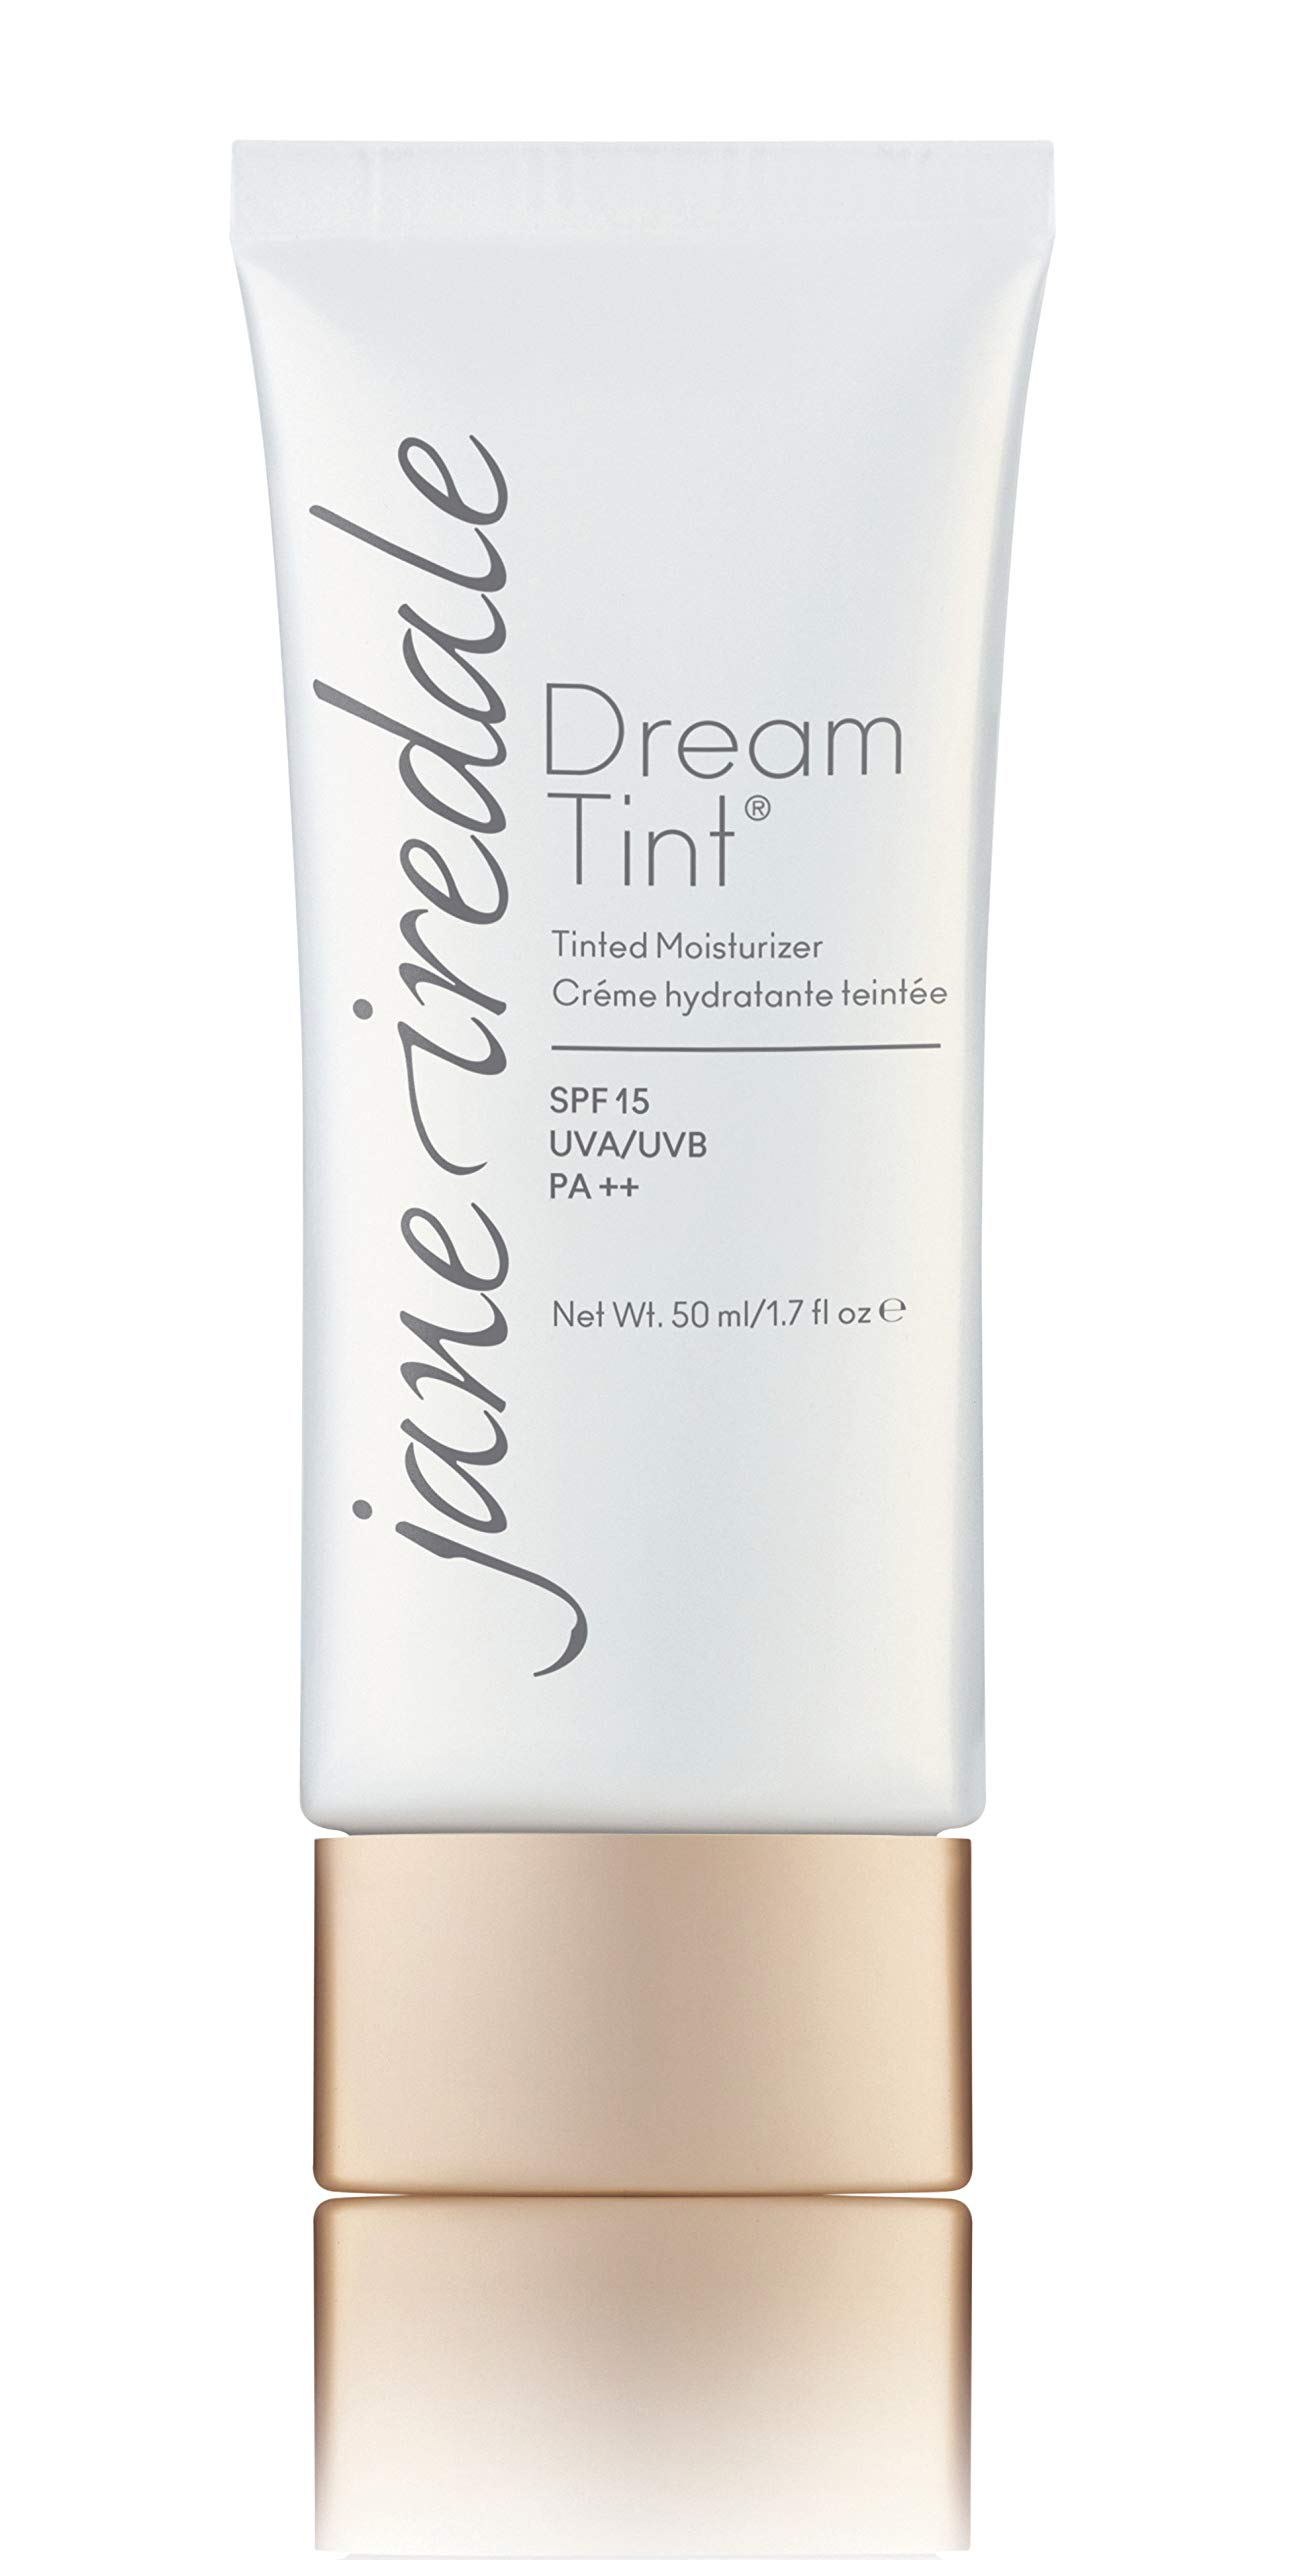 jane iredale Dream Tint SPF 15 Tinted Moisturizer, Medium Light, 1.7 Fluid Ounce by jane iredale